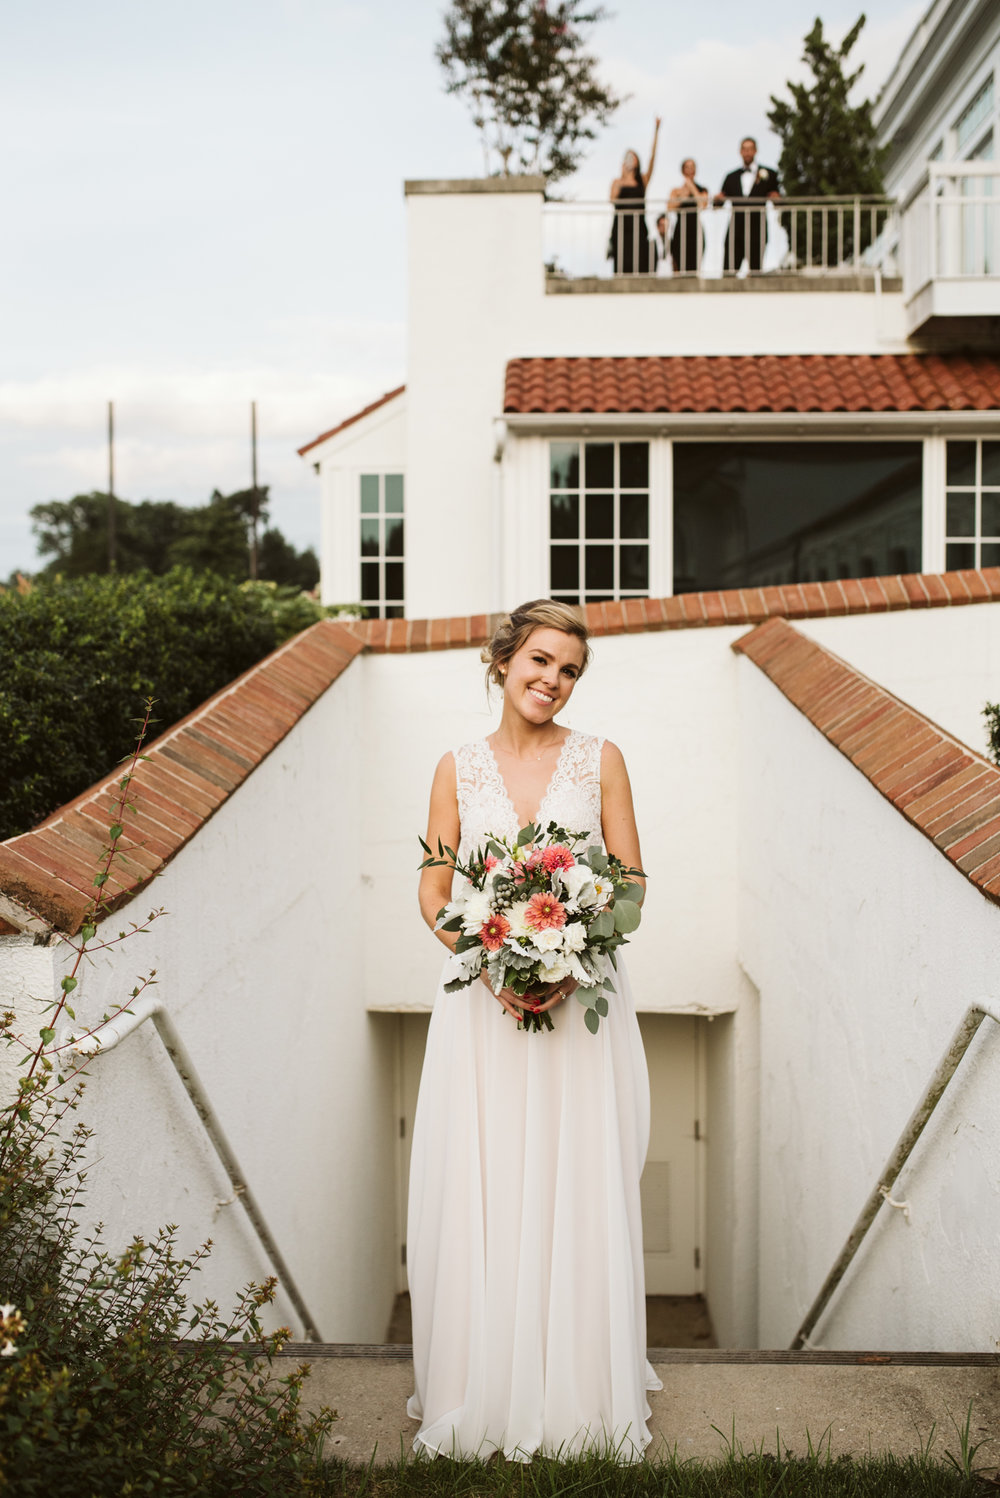 Elegant, Columbia Country Club, Chevy Chase Maryland, Baltimore Wedding Photographer, Classic, Bride Portrait in Front of Brick and Stucco Structure